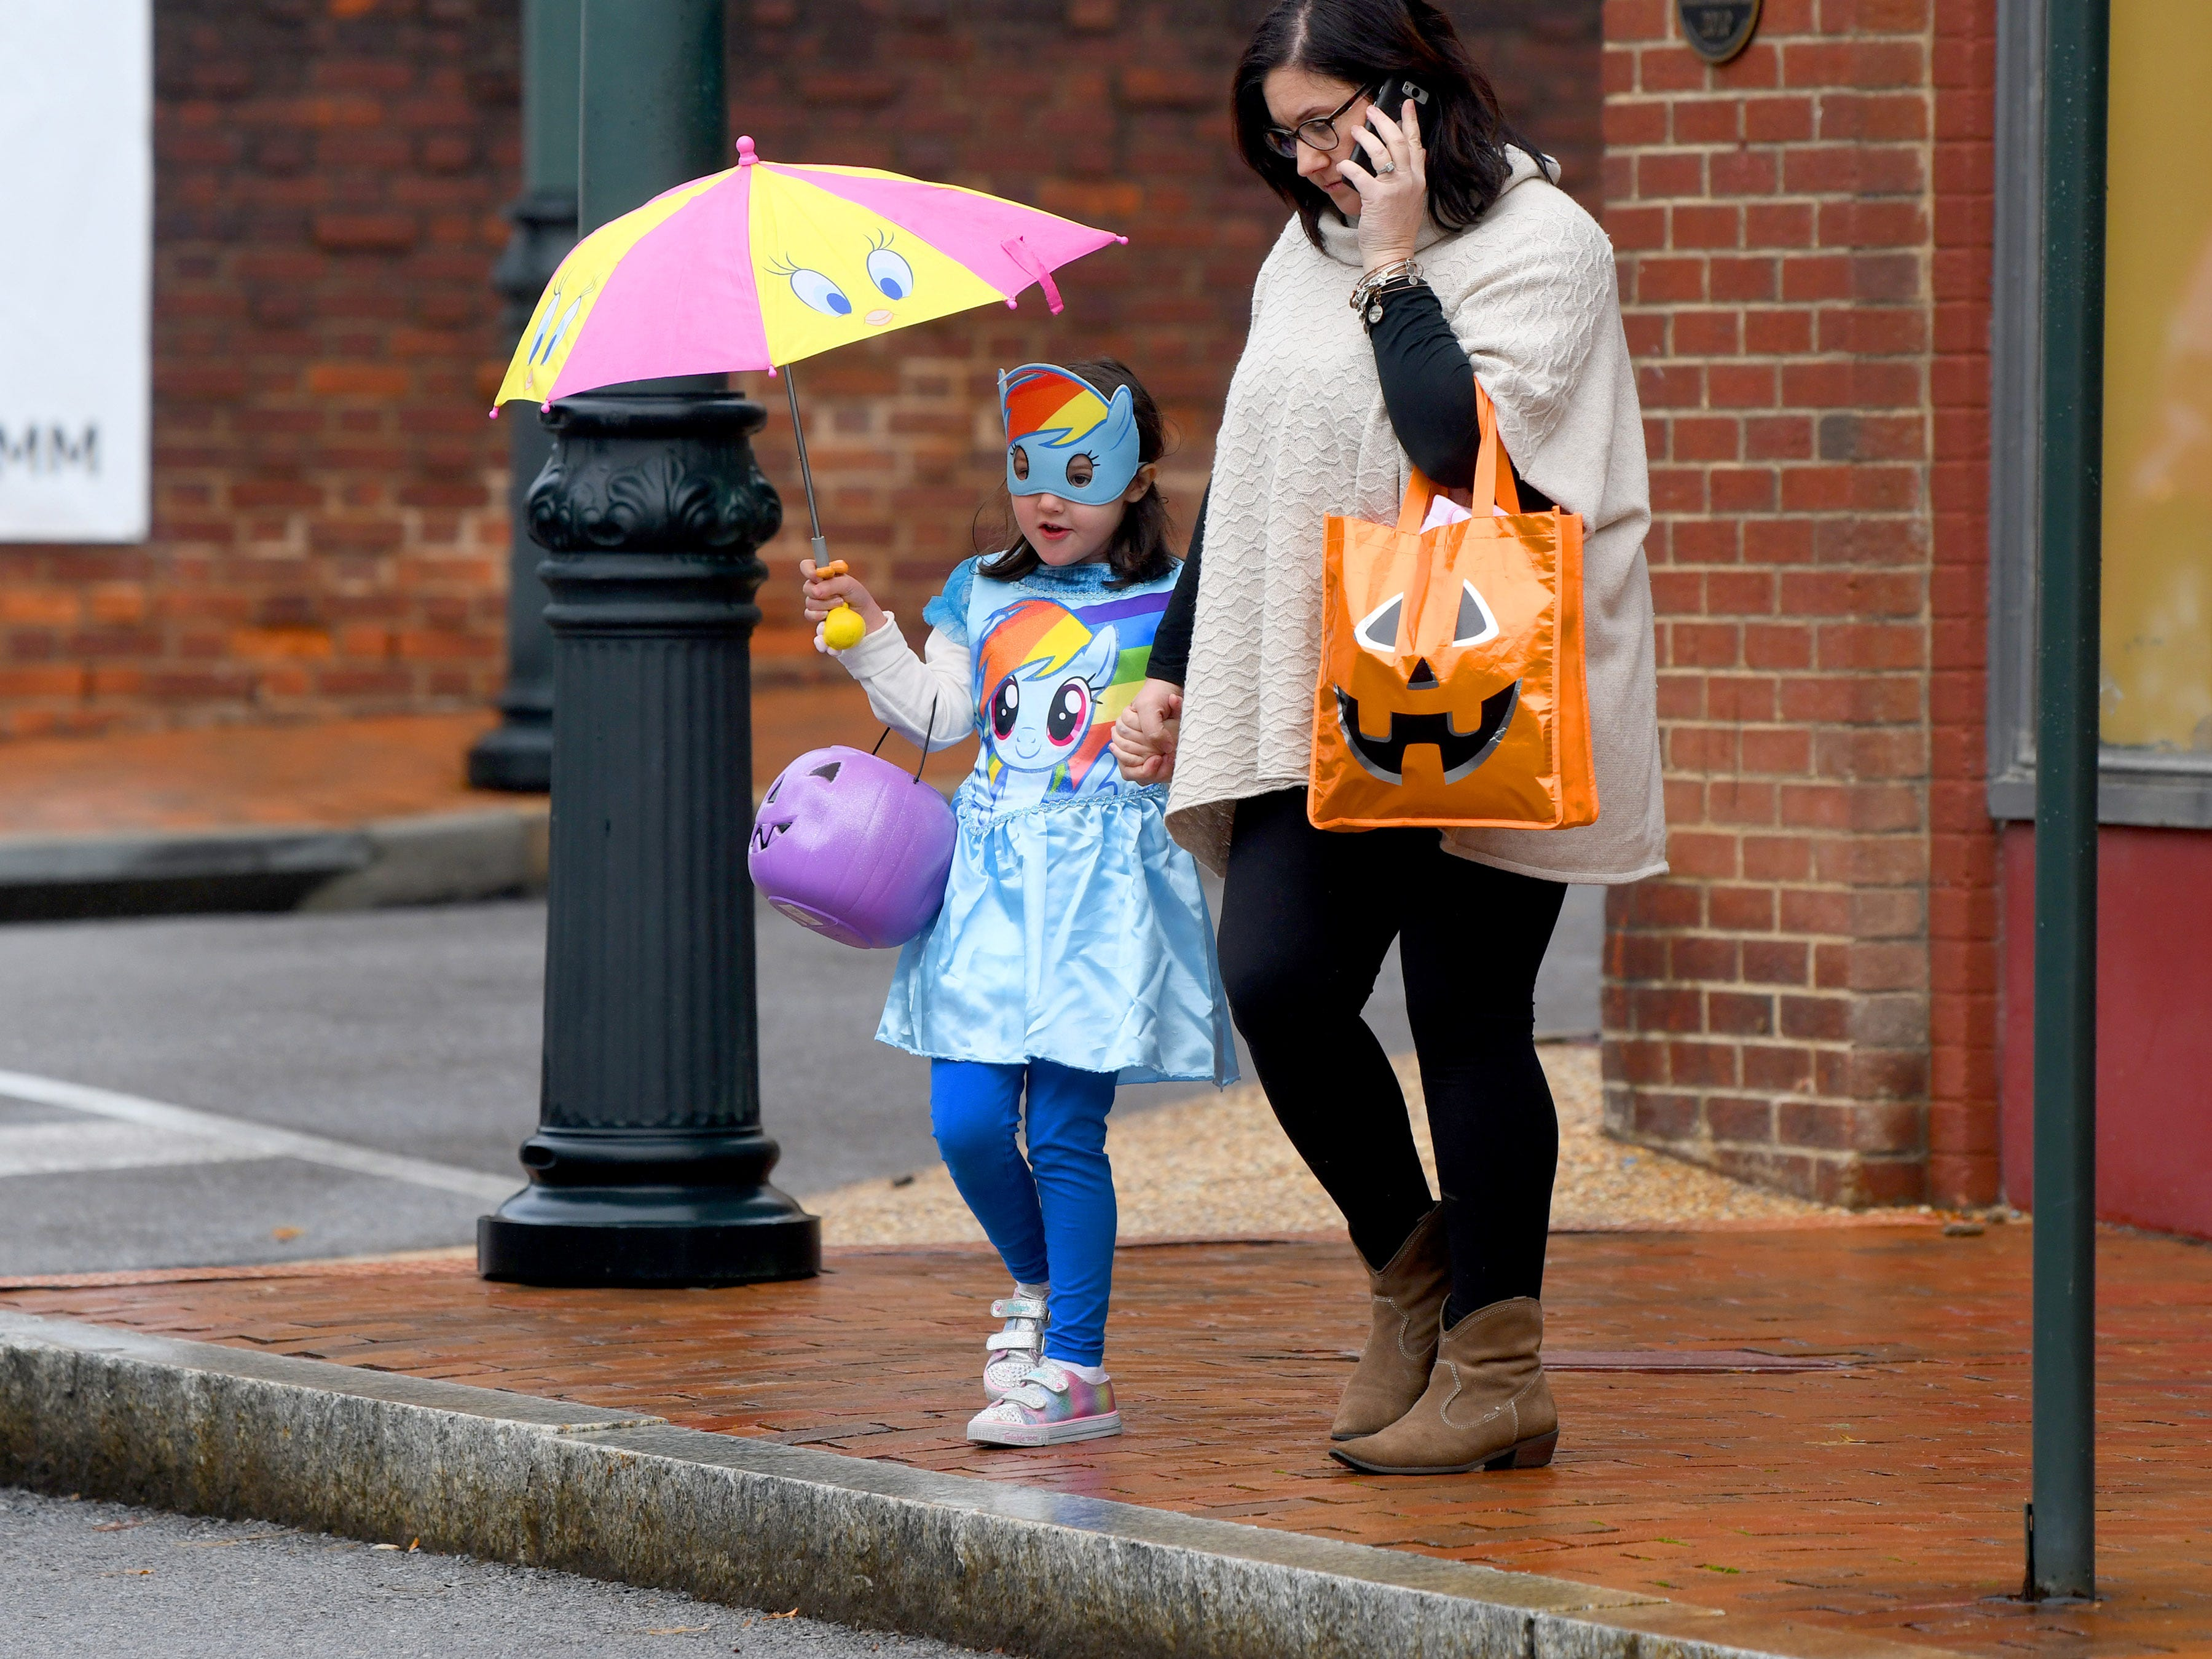 One My Little Pony uses a Tweety Bird umbrella to stay dry while trick-or-treating in downtown Staunton on Saturday, Oct. 27, 2018.